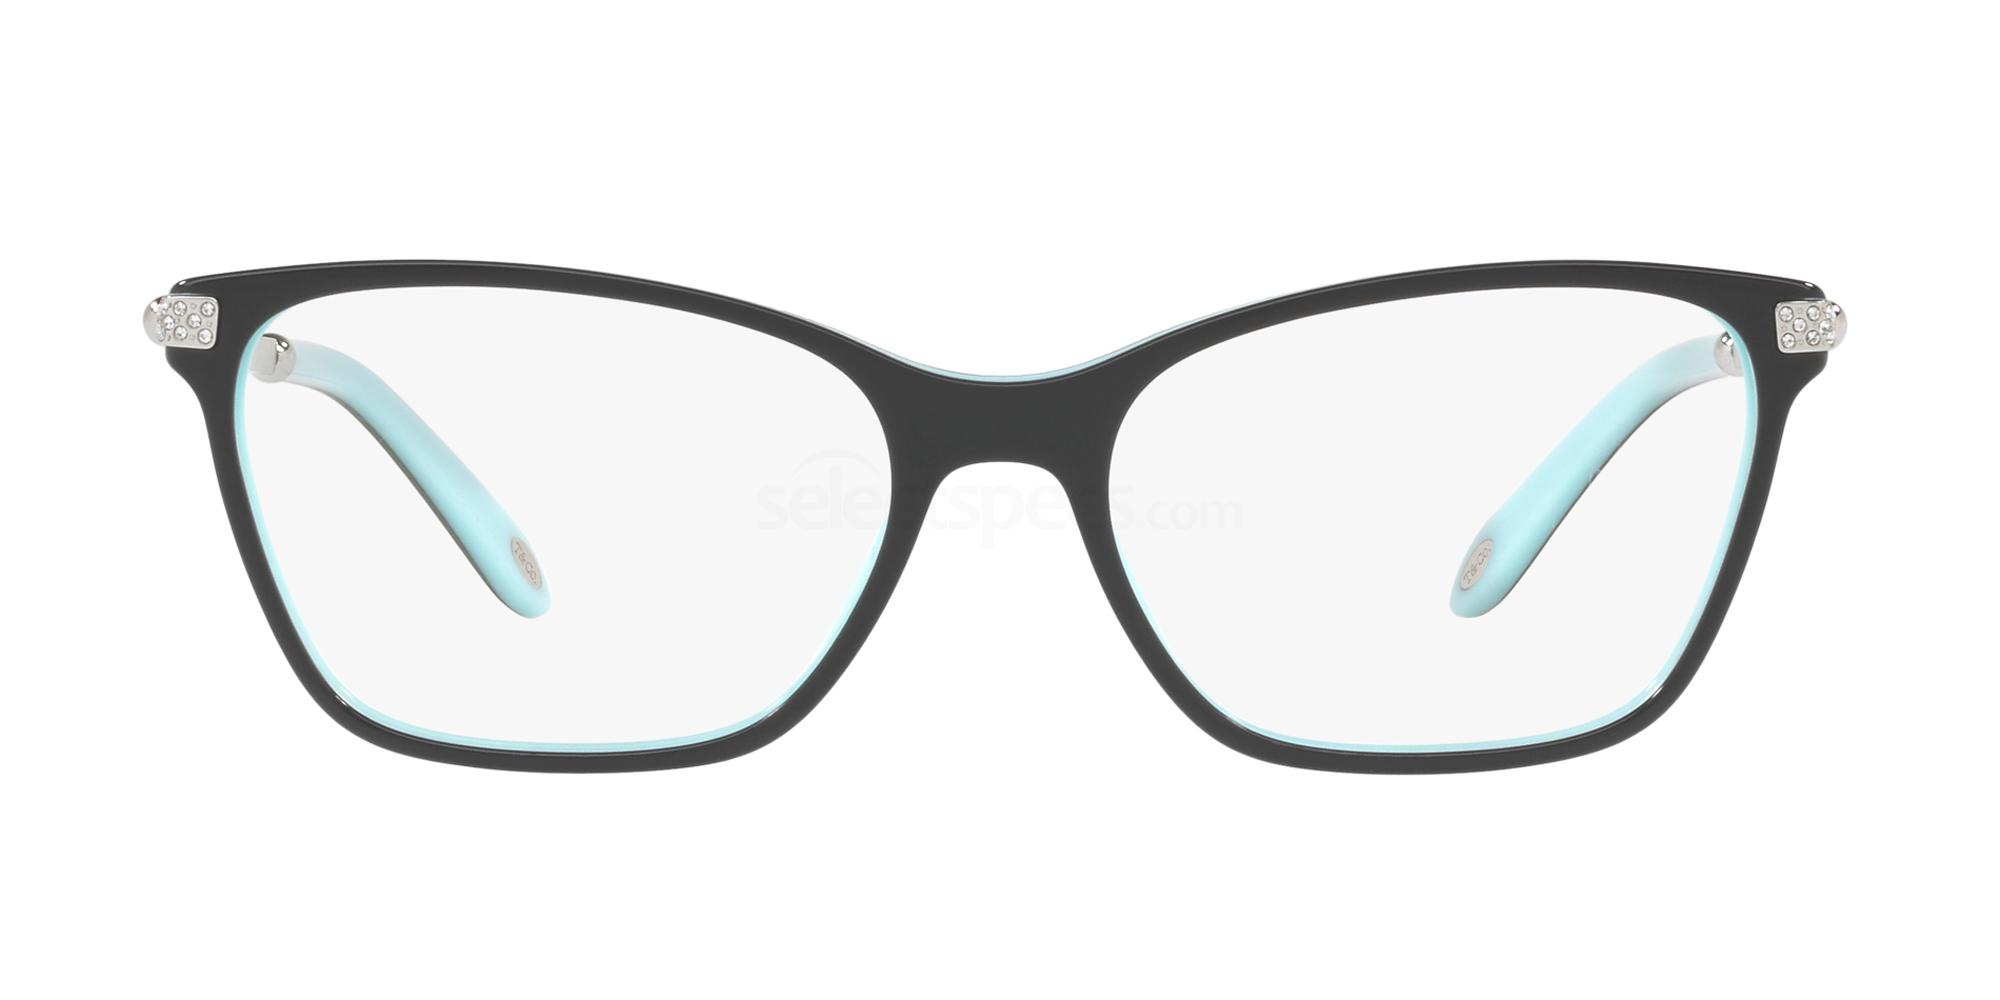 8055 TF2158B Glasses, Tiffany & Co.